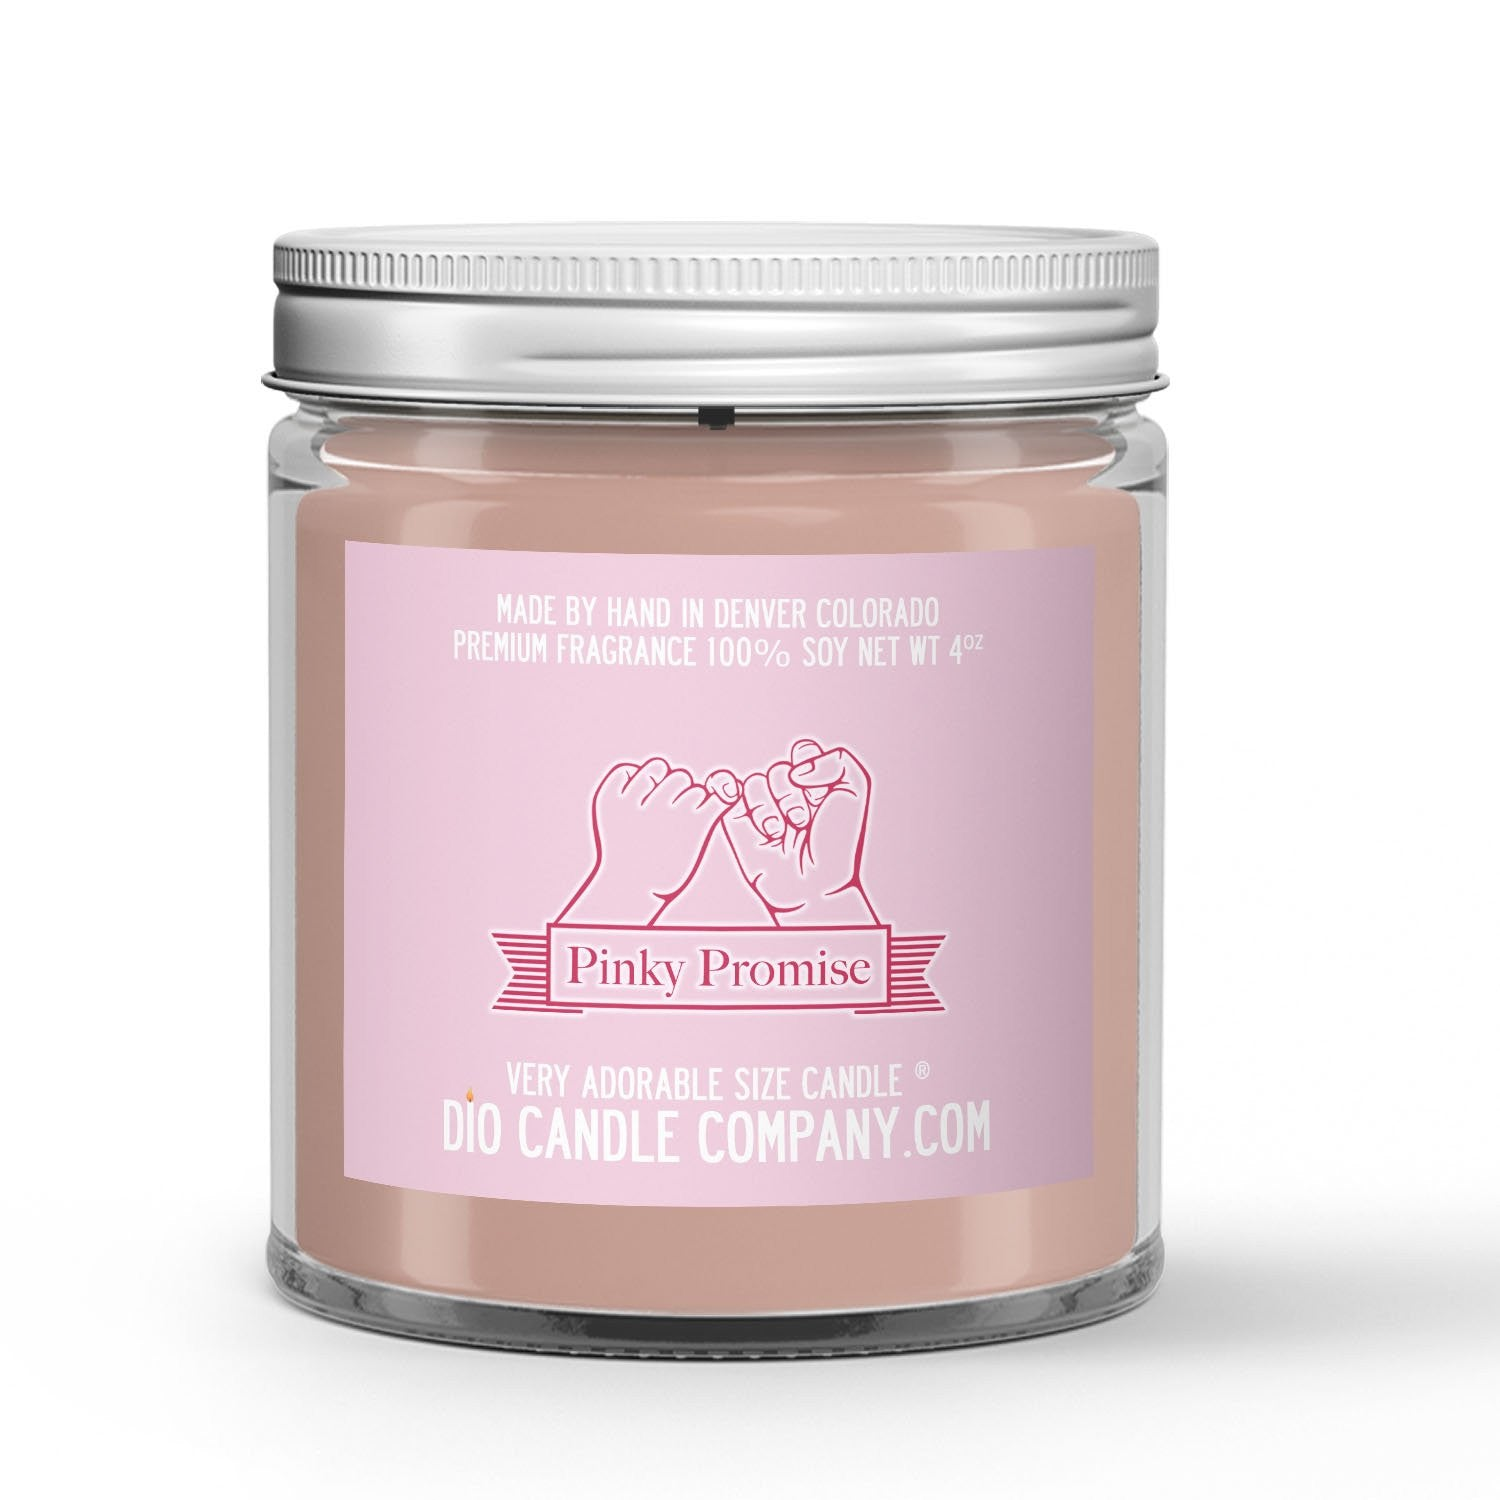 Pinkie Promise Candle - Raspberry Jam - 4oz Very Adorable Size Candle® - Dio Candle Company